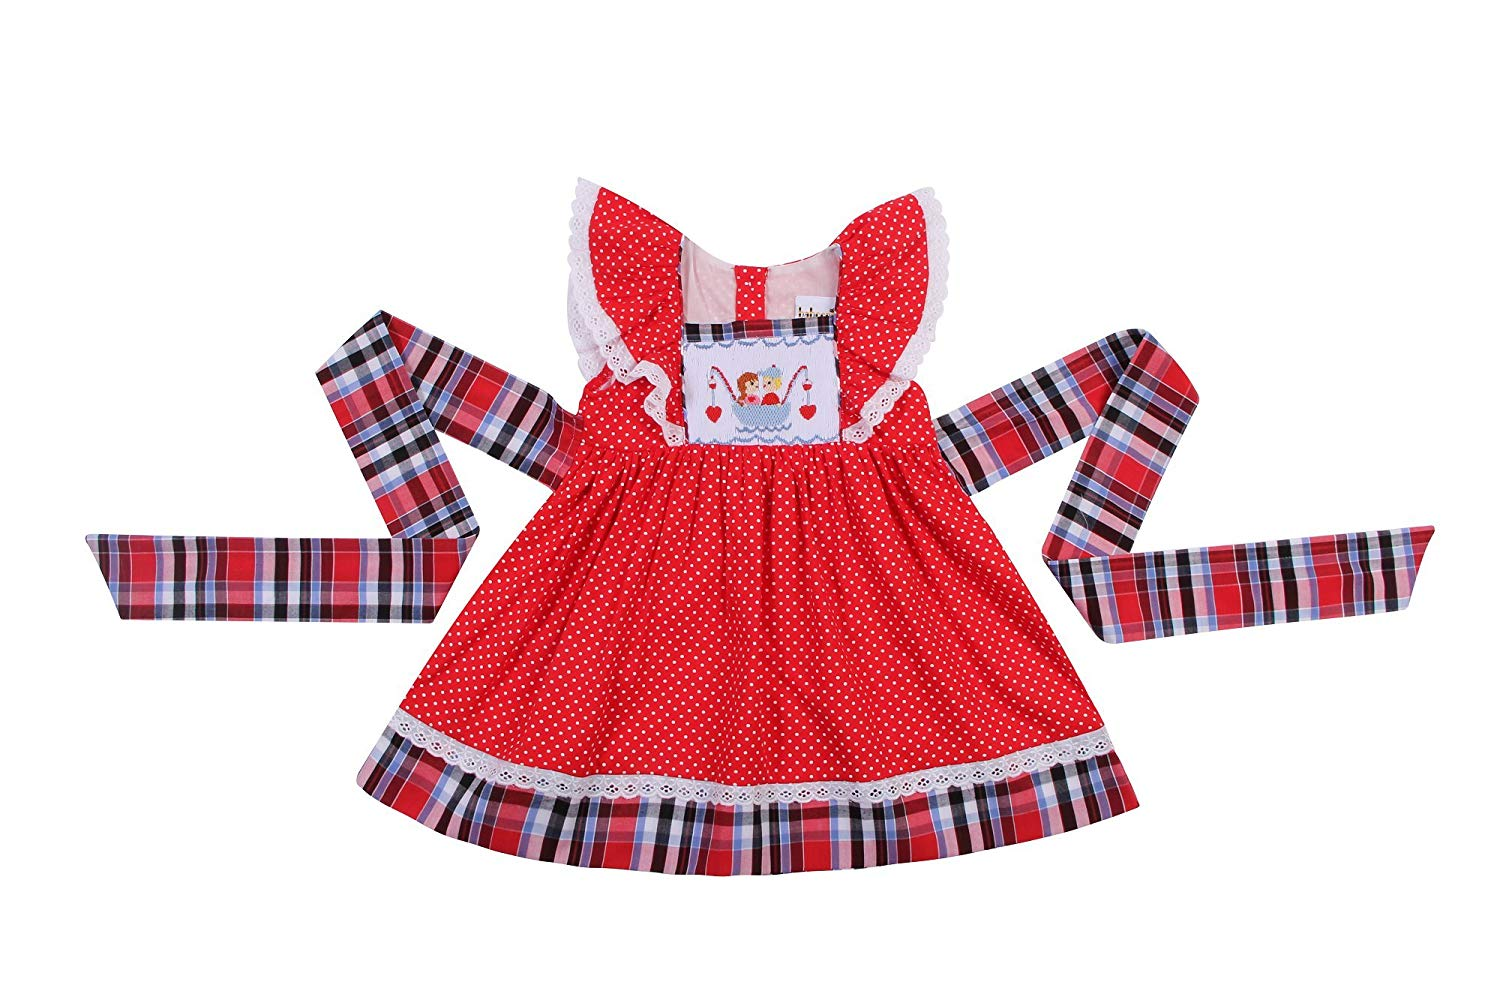 c60c967ac Get Quotations · Babeeni Smocked Dresses for Girls Featured with Angels  Sleeve and Hand Smocked Cute Couple Pattern on